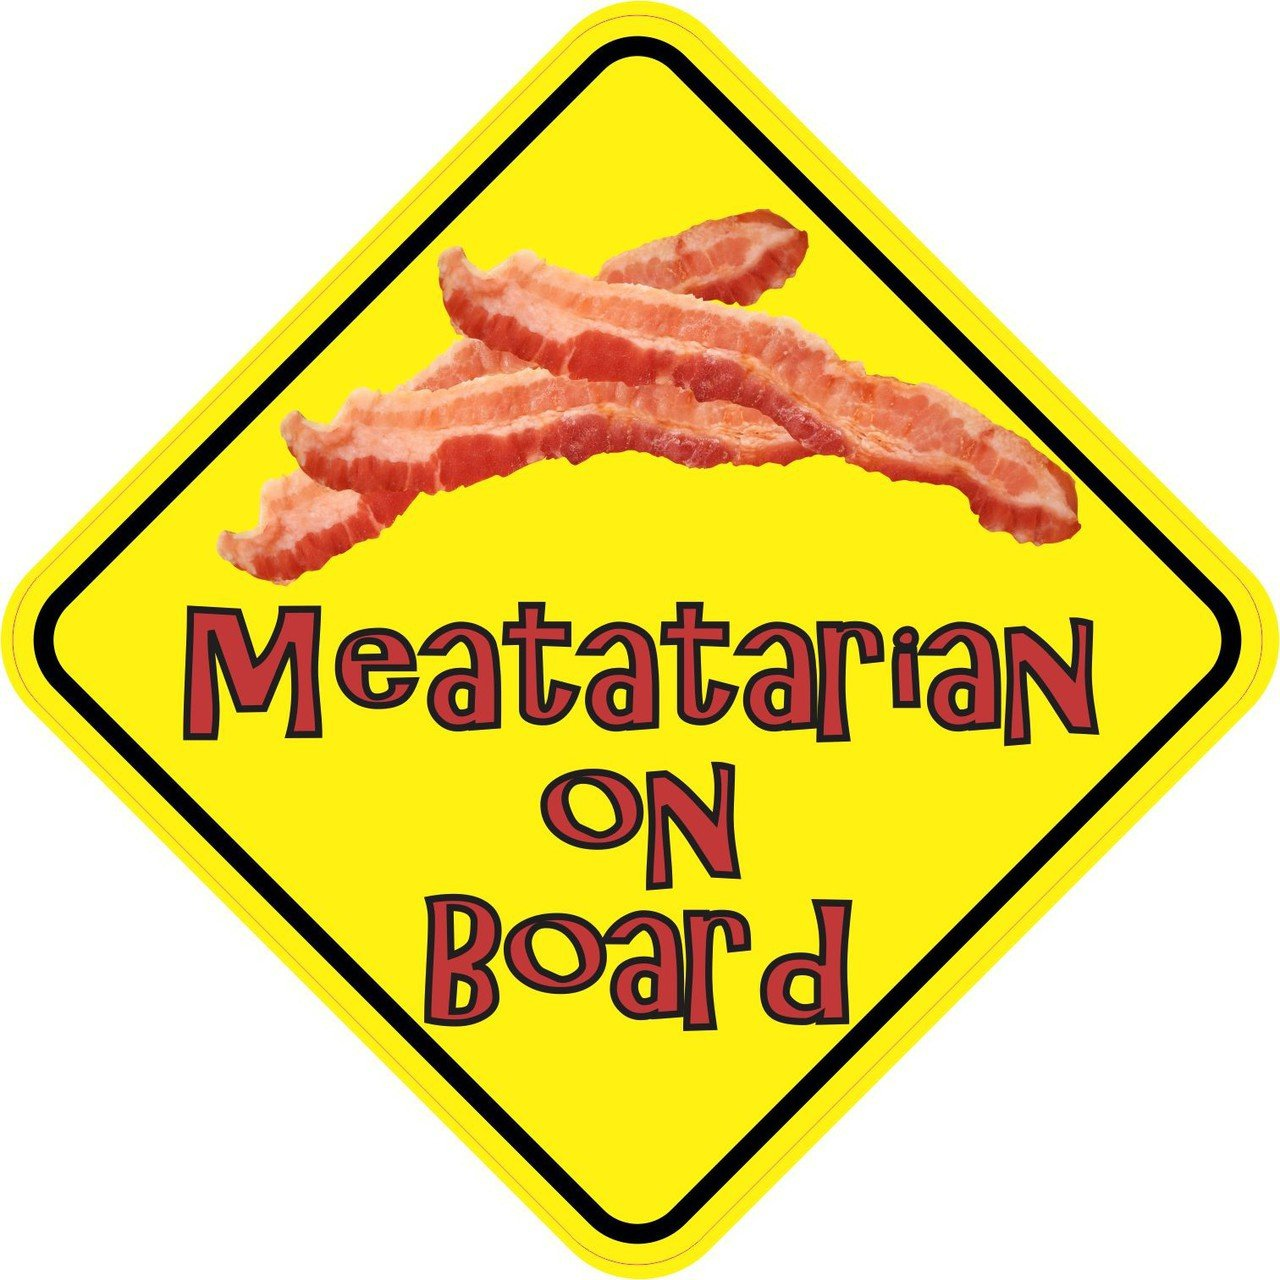 Meatatarian On Board Sticker